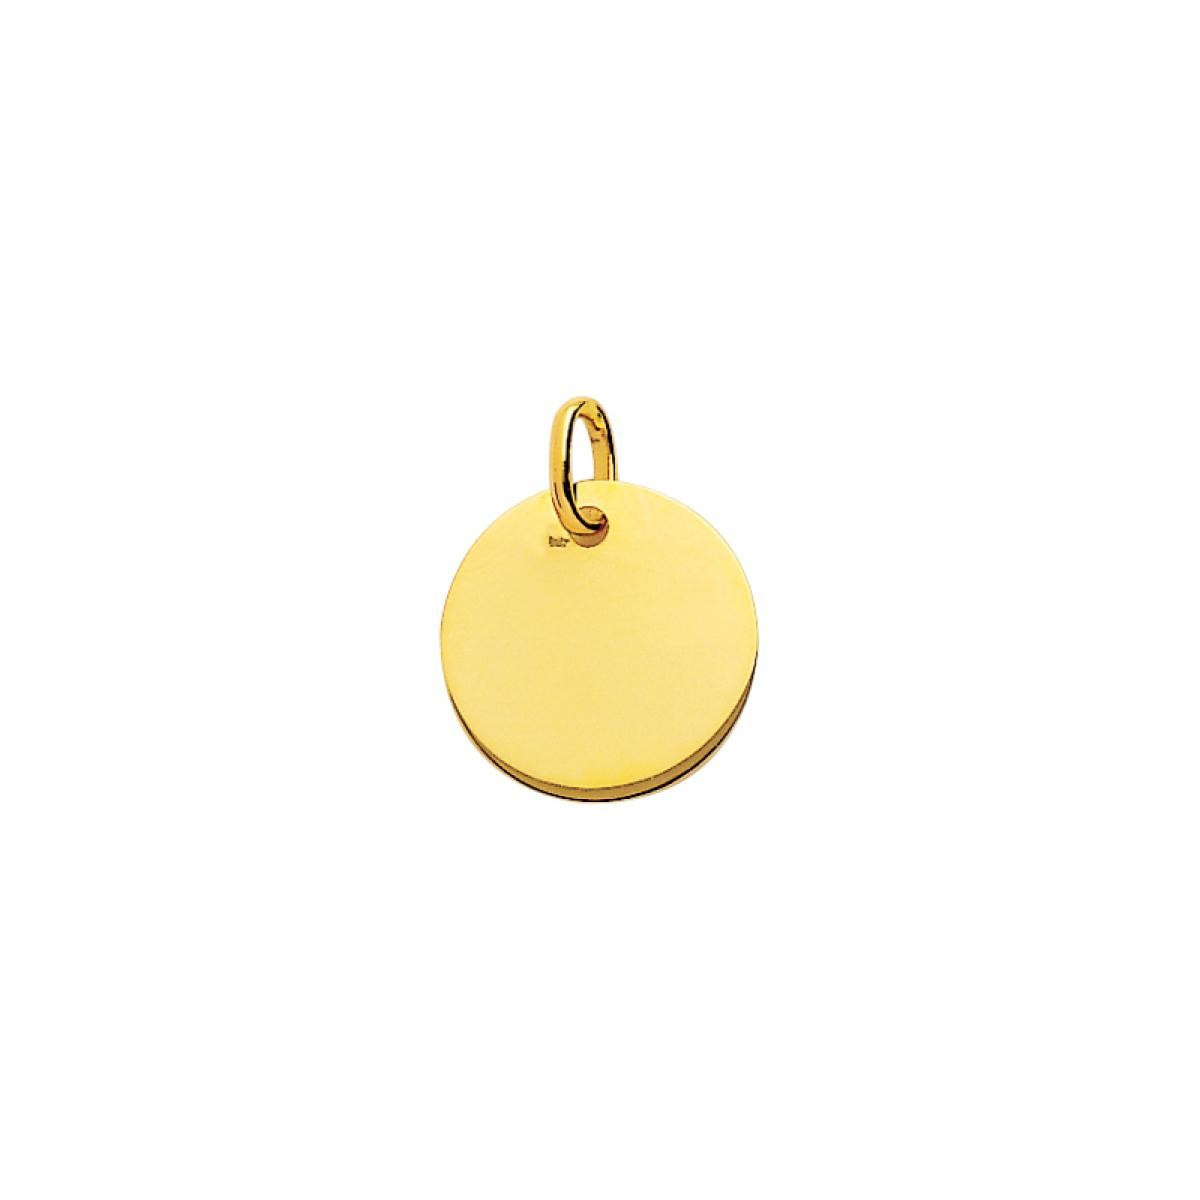 Plaque ronde or 750/1000 (18K)  jaune